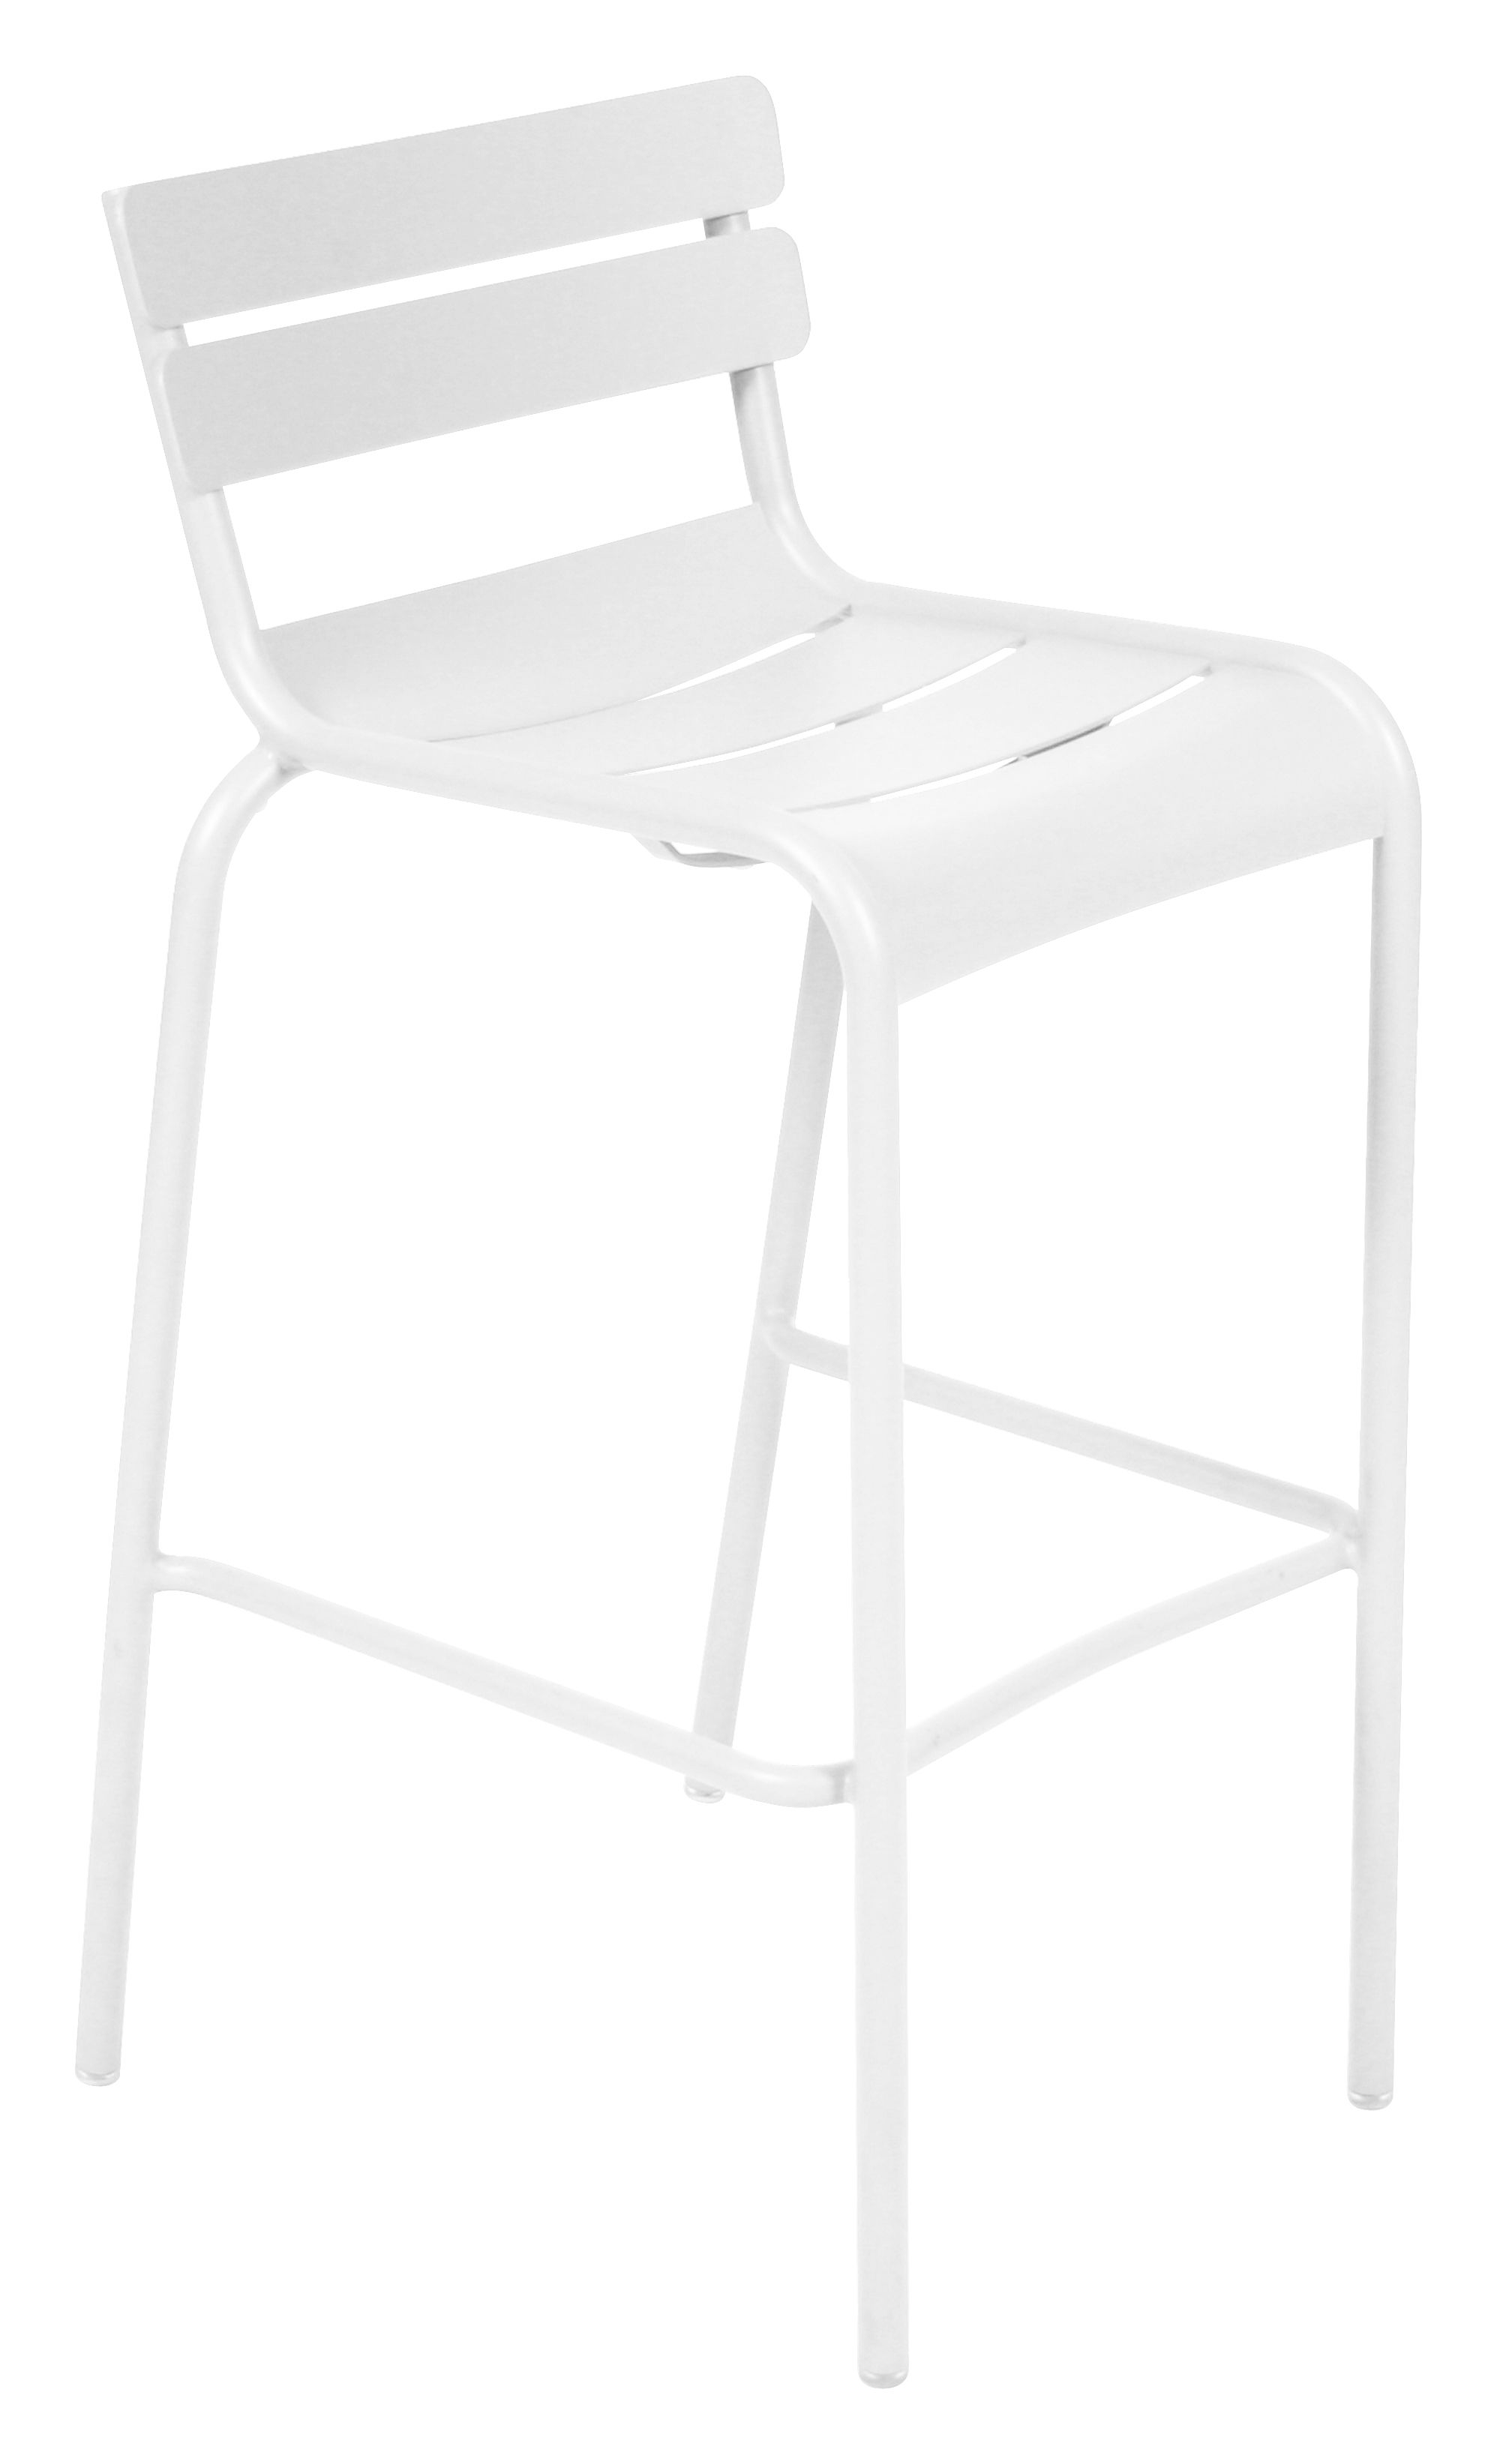 Furniture - Bar Stools - Luxembourg Bar chair - H 80 cm - Metal by Fermob - Cotton white - Lacquered aluminium